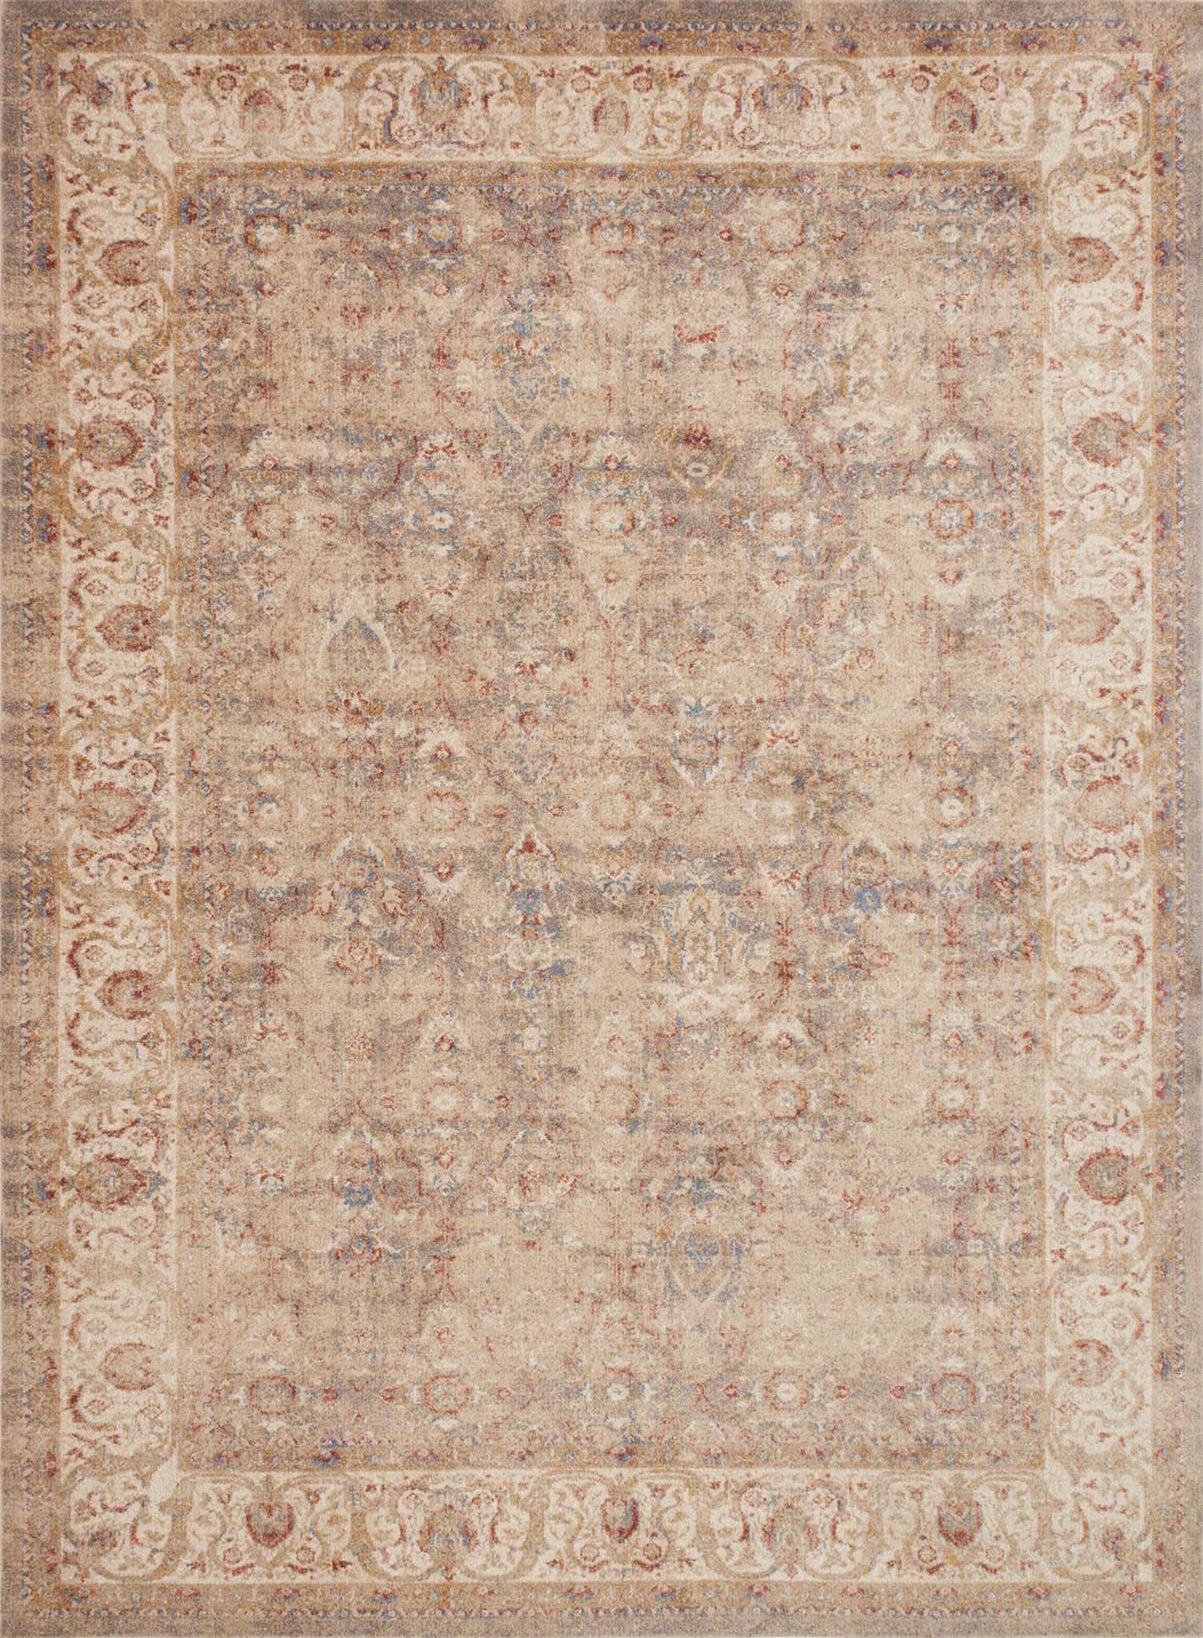 Trinity Ty 04 Sand Ivory Area Rug Magnolia Home By